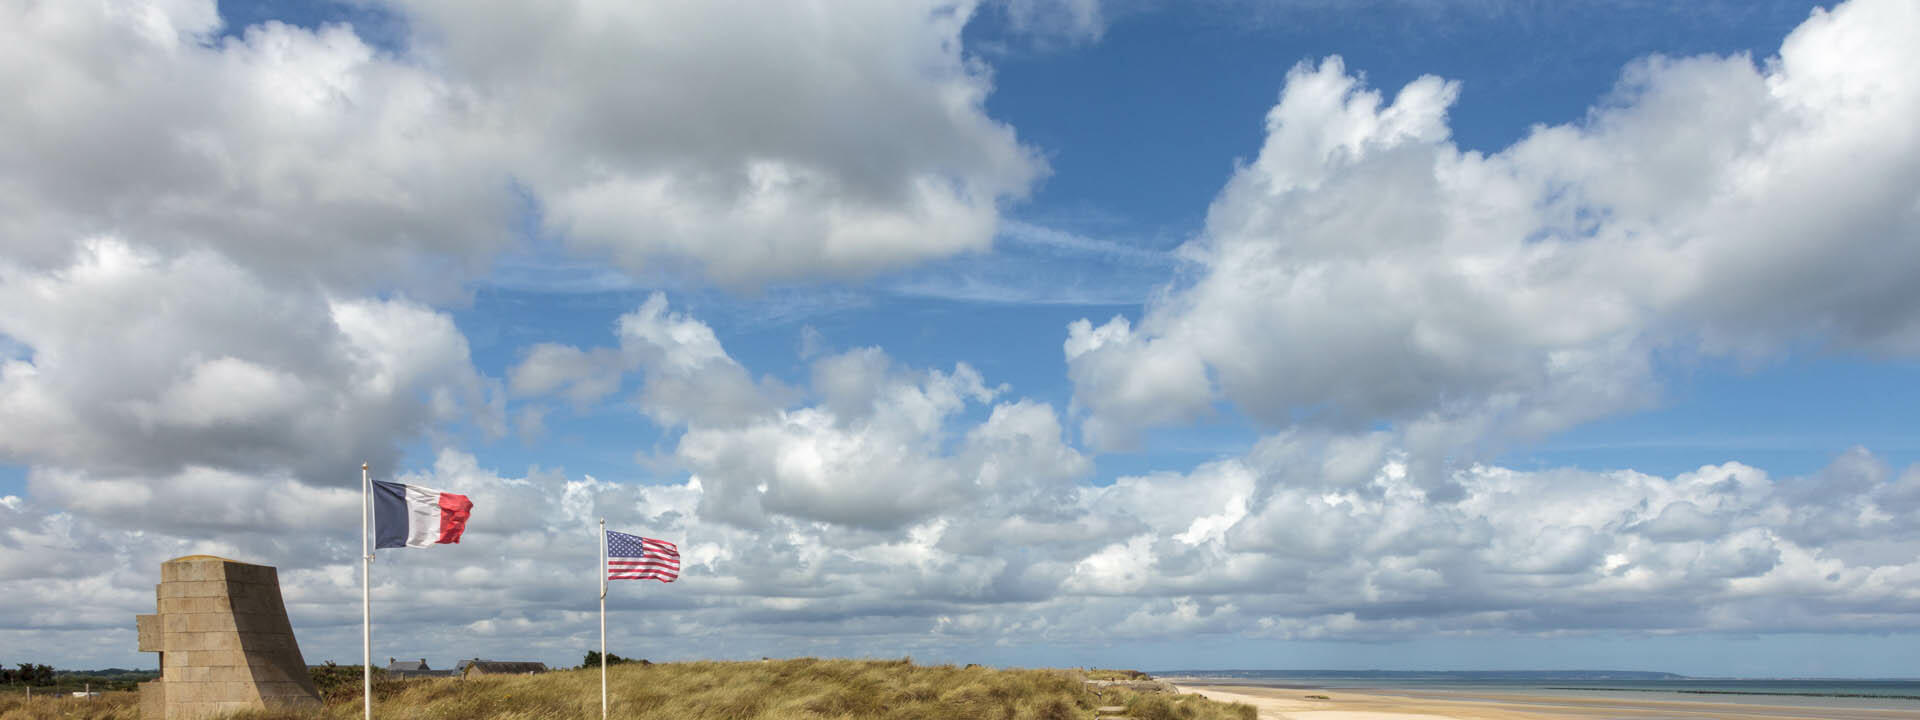 Discover Normandy's history of the Second World War